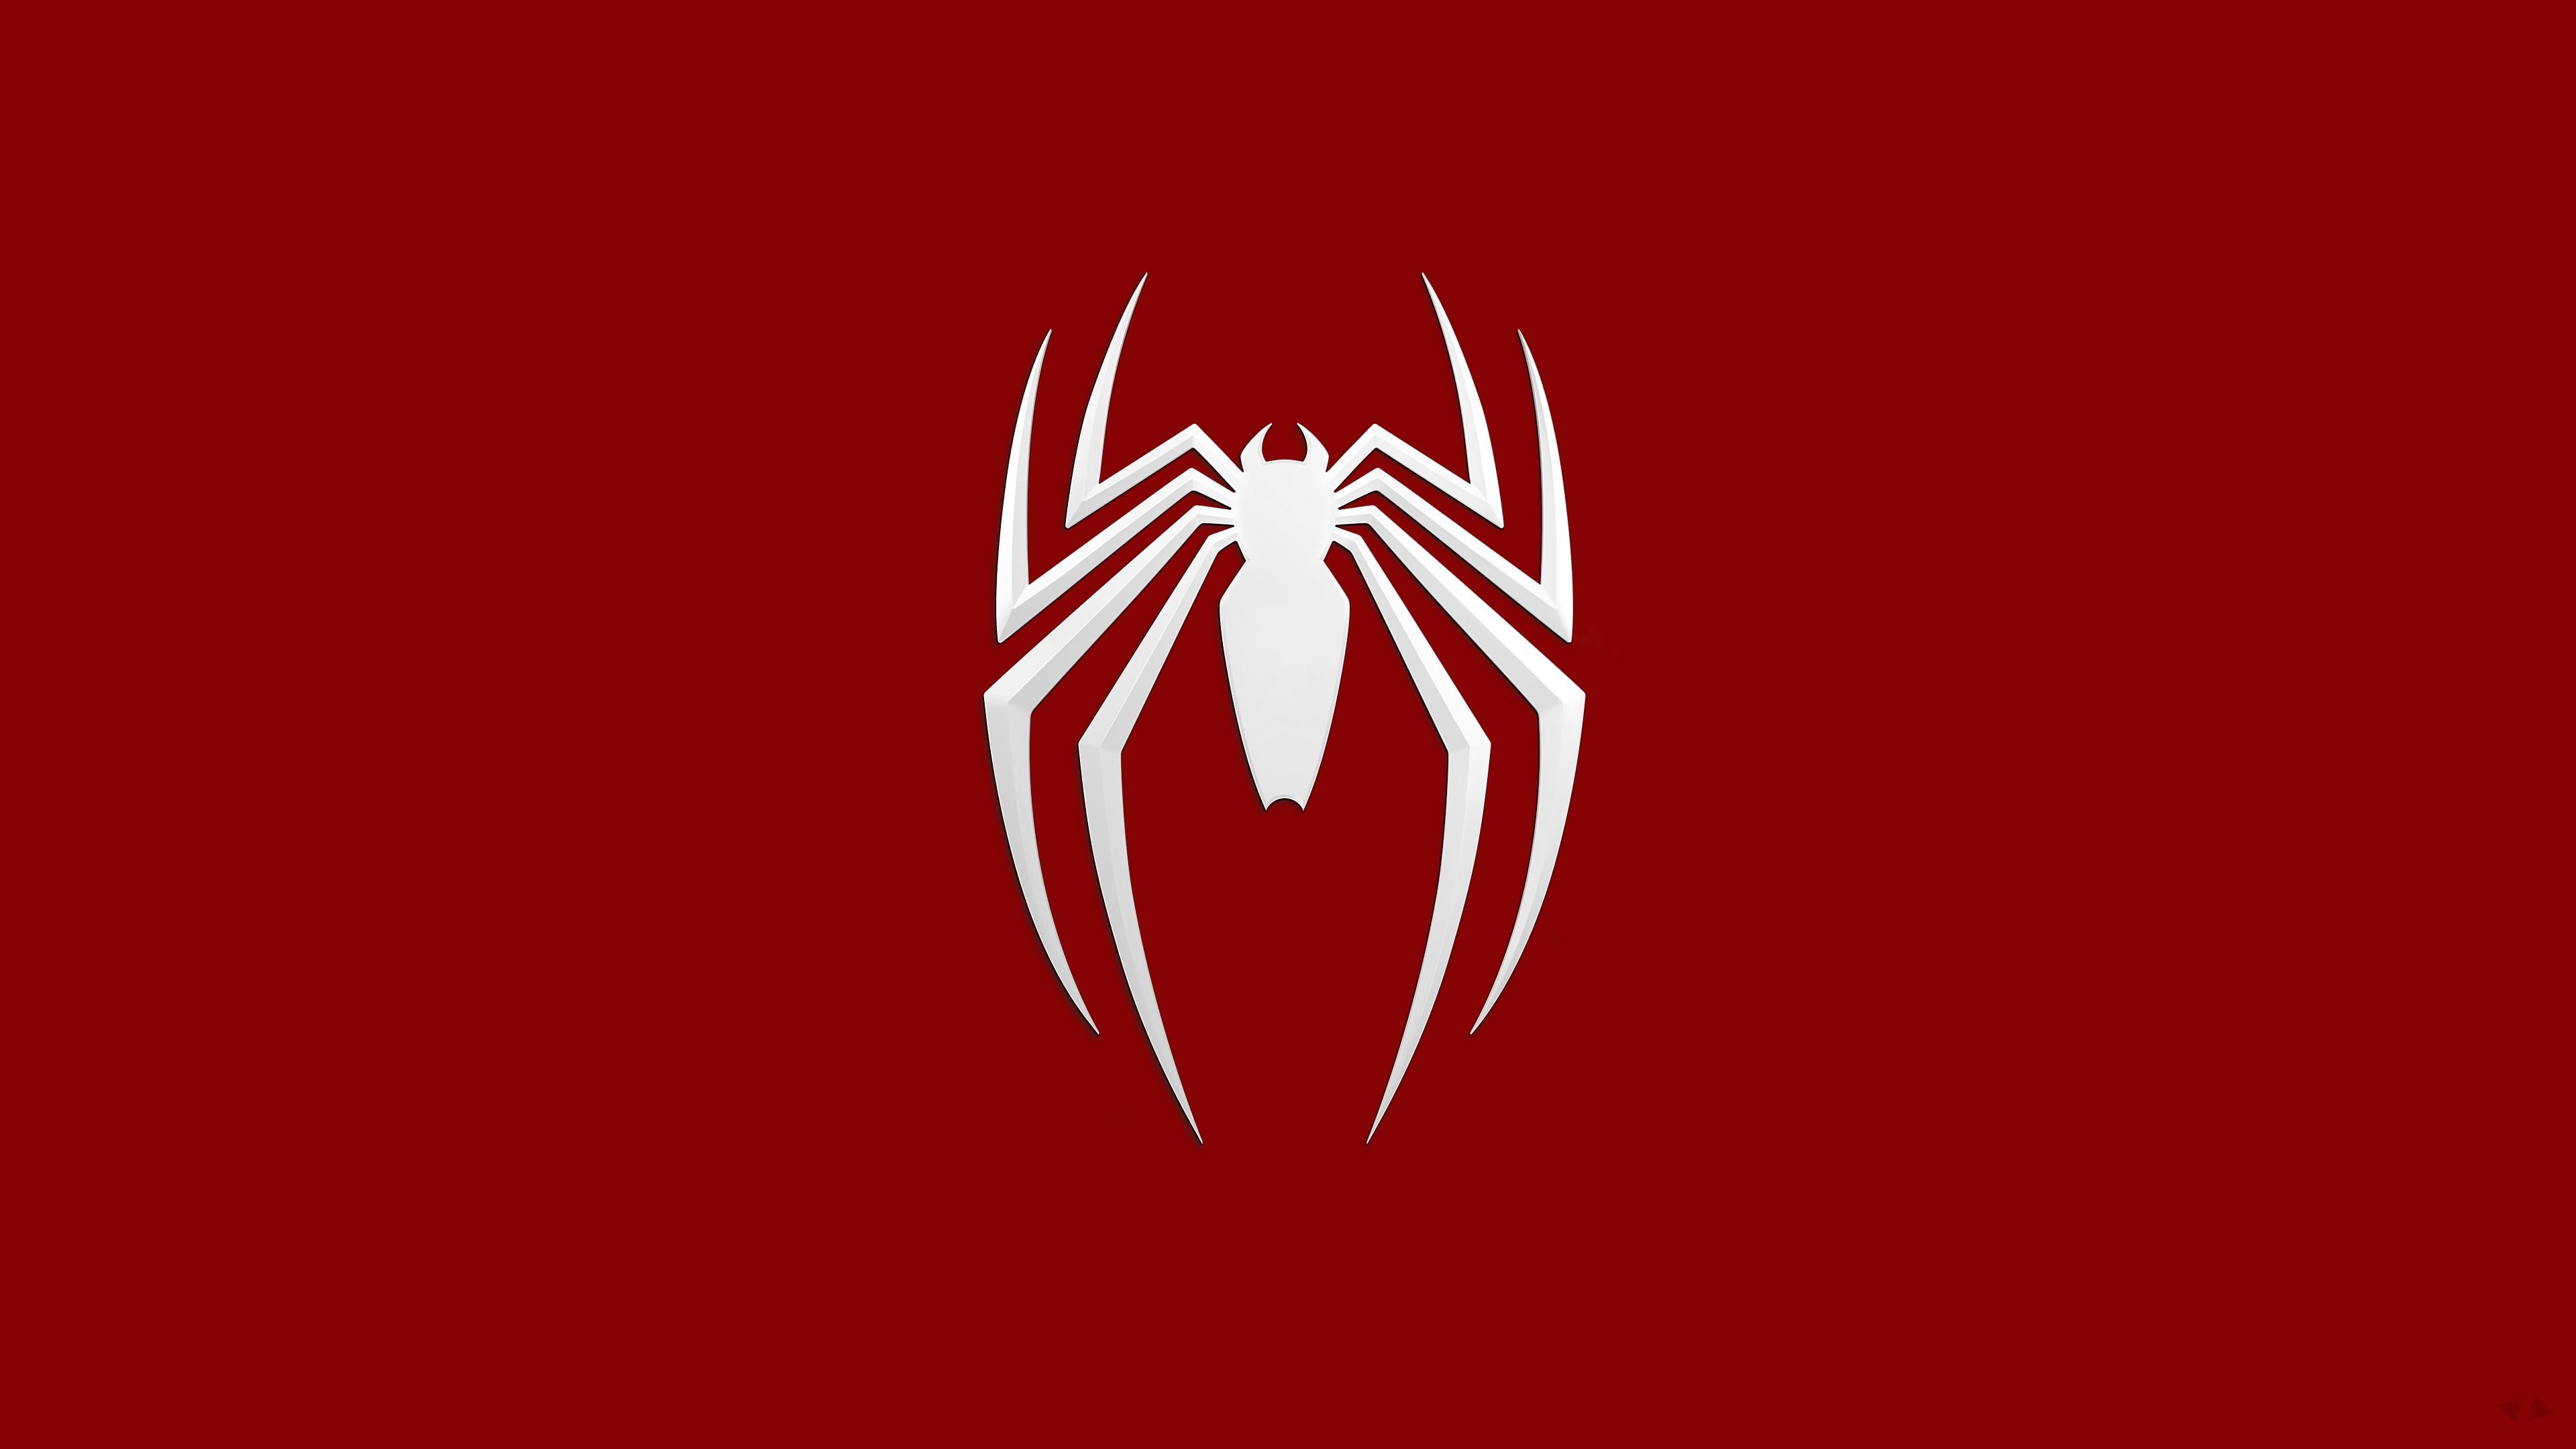 Marvel Spider Man Logo Spider Man Logo Simple Background Spider Man 2018 Marvel Comics 4k Wallpaper Hdwallpaper Desk In 2020 Spider Man 2018 Man Logo Spiderman